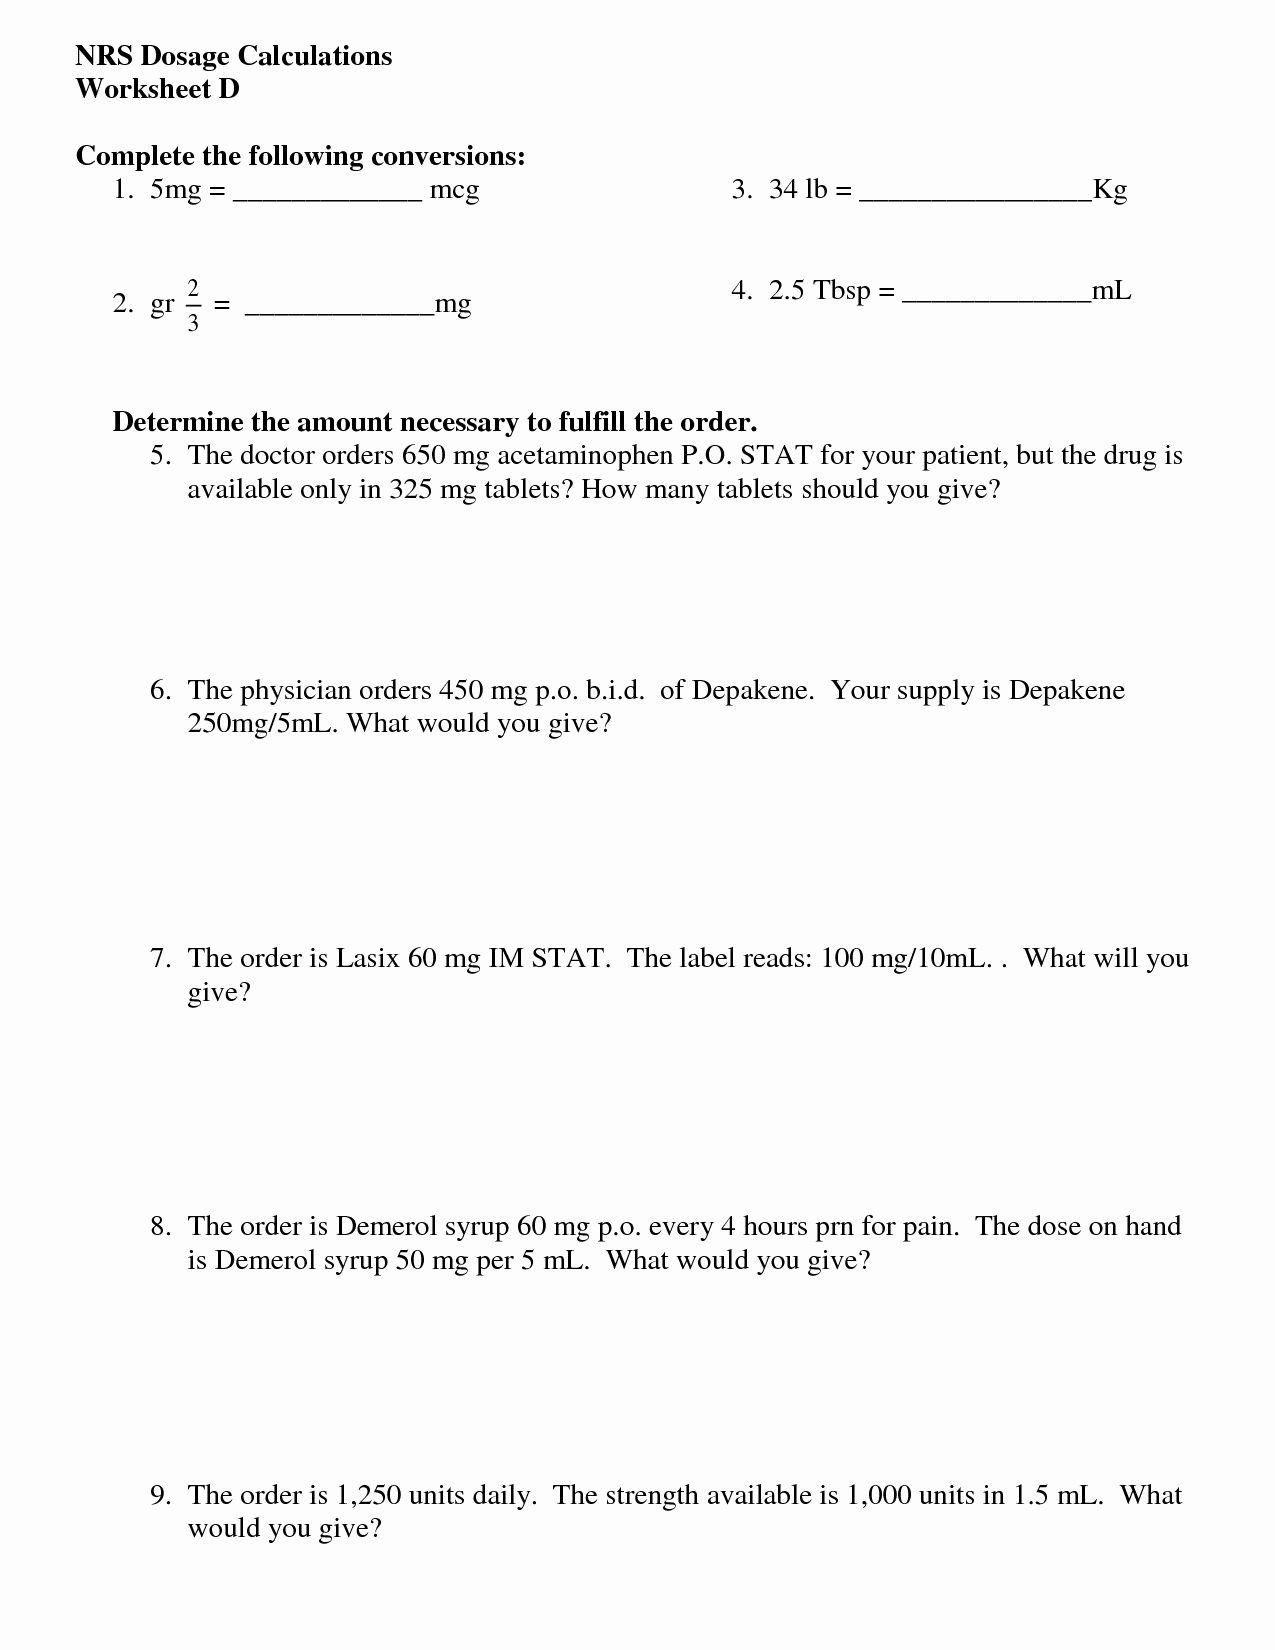 Dimensional Analysis Problems Worksheet 37 Clever Math Practice Worksheets Design S In 2020 Math Practice Worksheets Nursing Math Math Practices